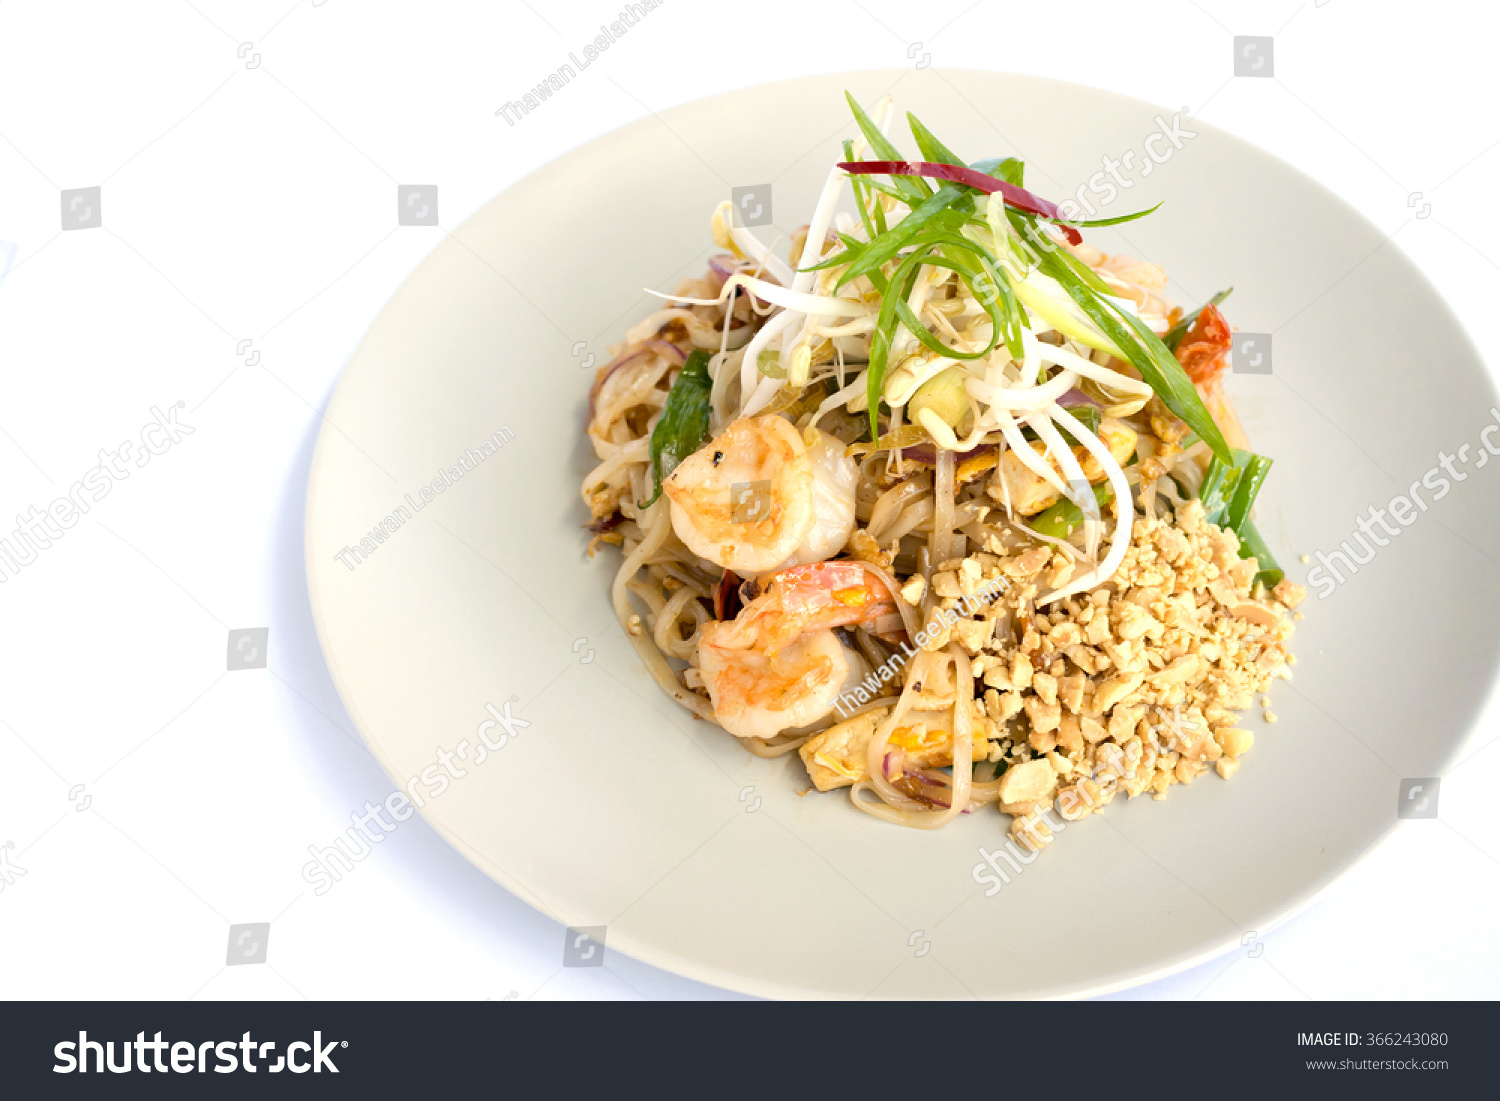 ... Food, Stir-Fried Rice Noodles with Egg, Vegetables and King Prawn